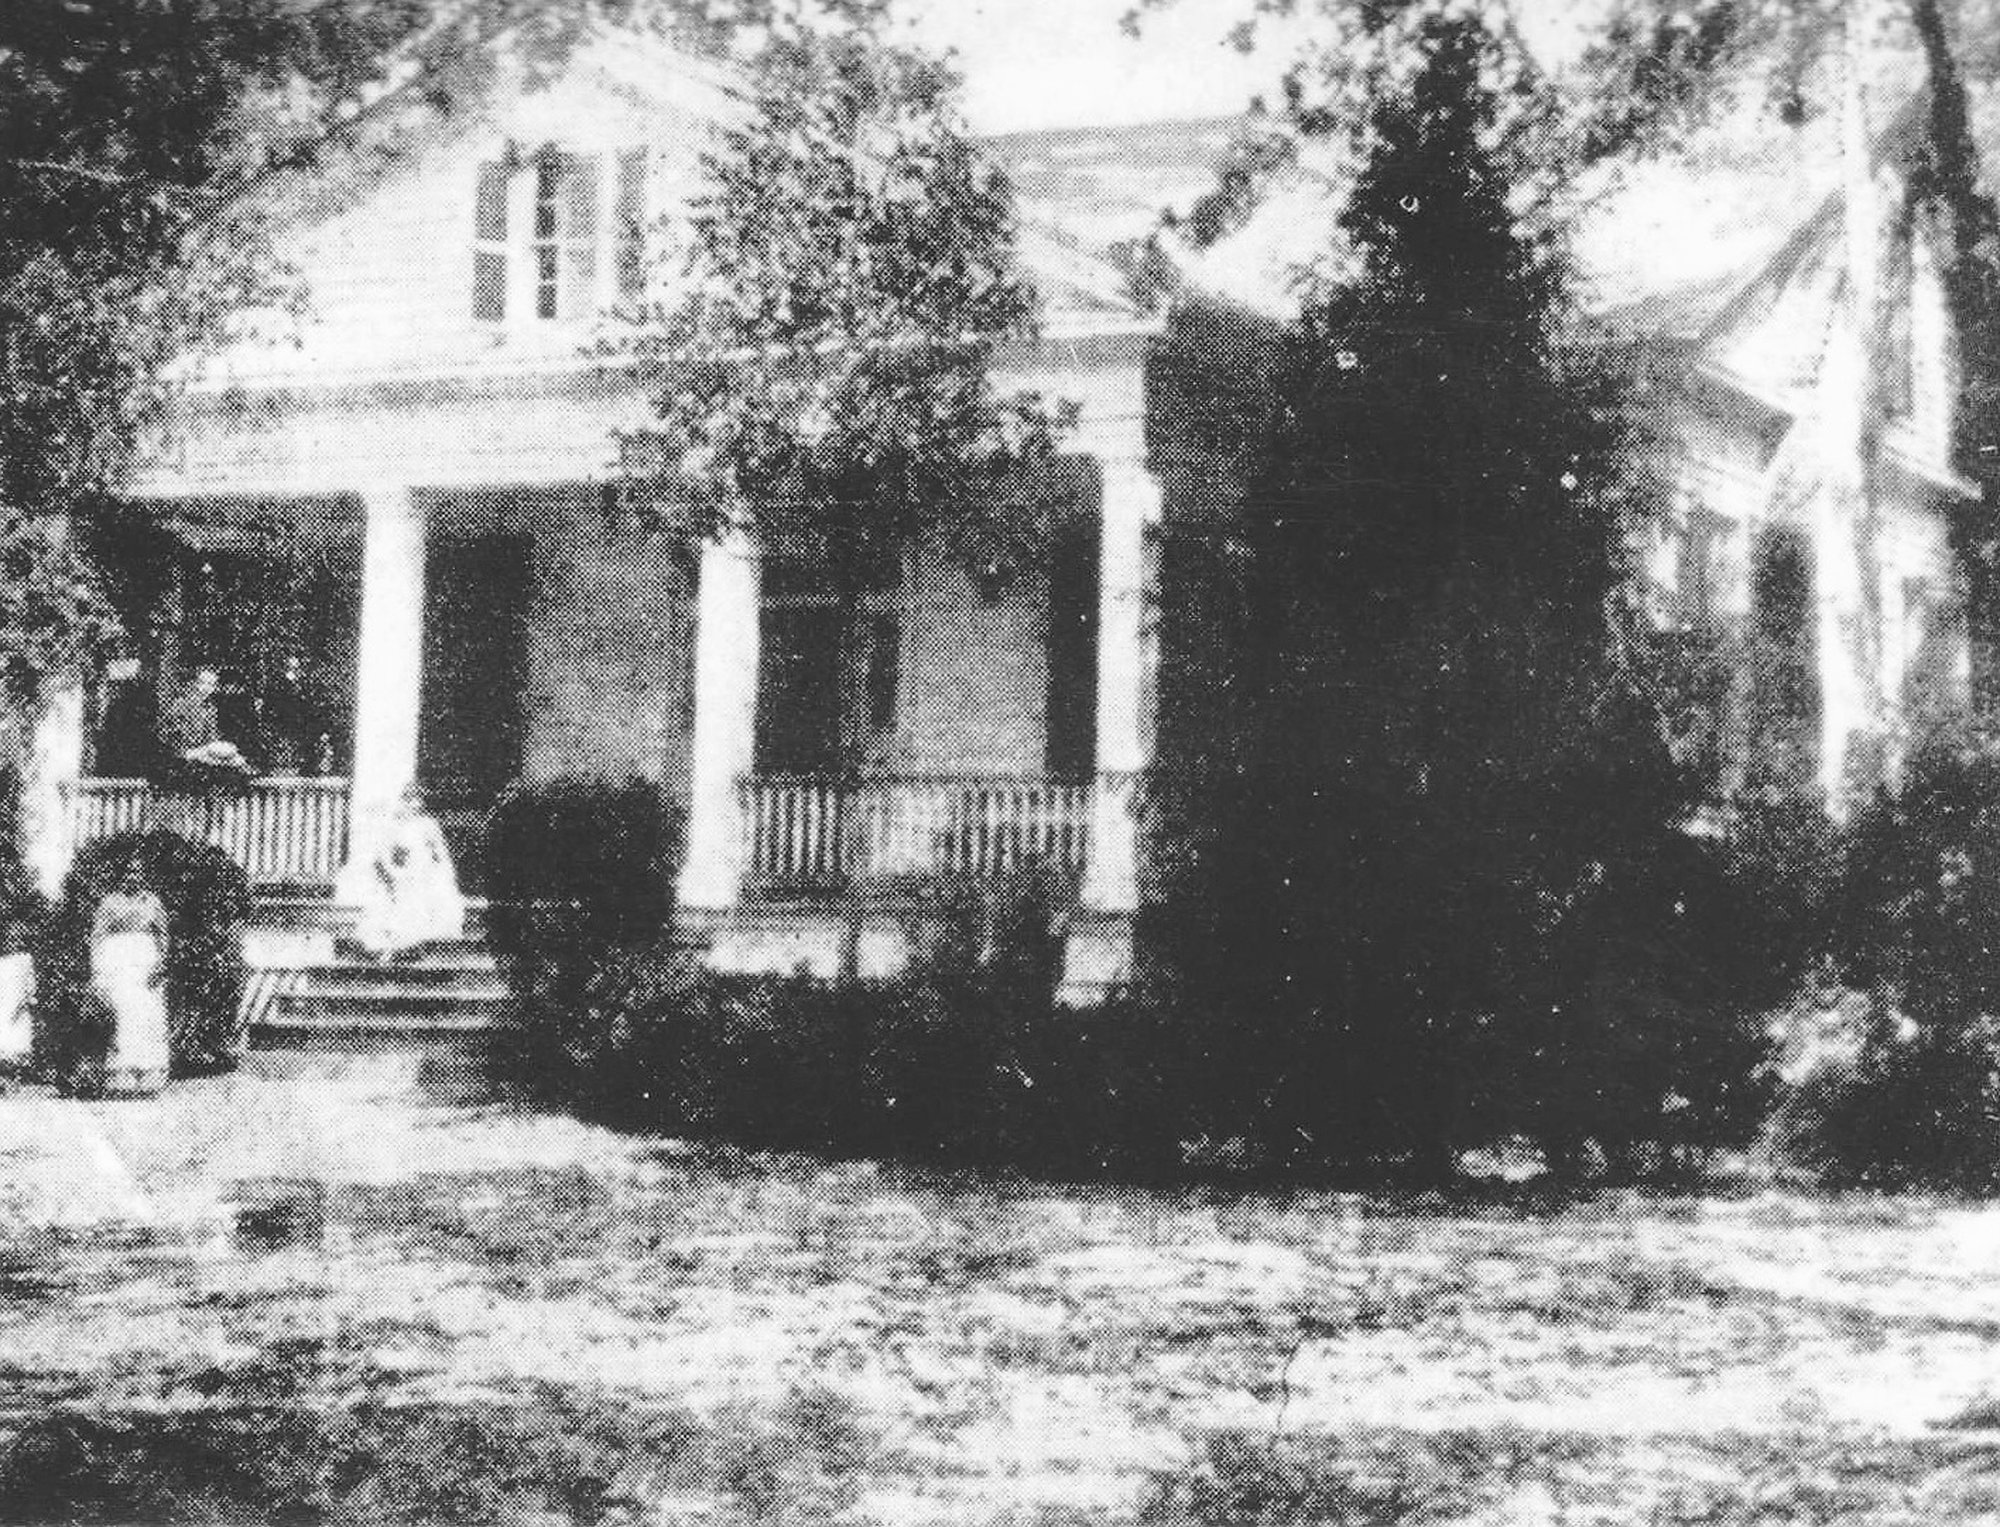 The Blanding home on Hampton Avenue was purchased by James D. McFaddin, father-in-law of Col. James D. Blanding, and placed in trust for his daughter Lenora for the couple and their 15 children. Blanding was respected in Sumter in the field of law and was born in 1821 in Columbia.